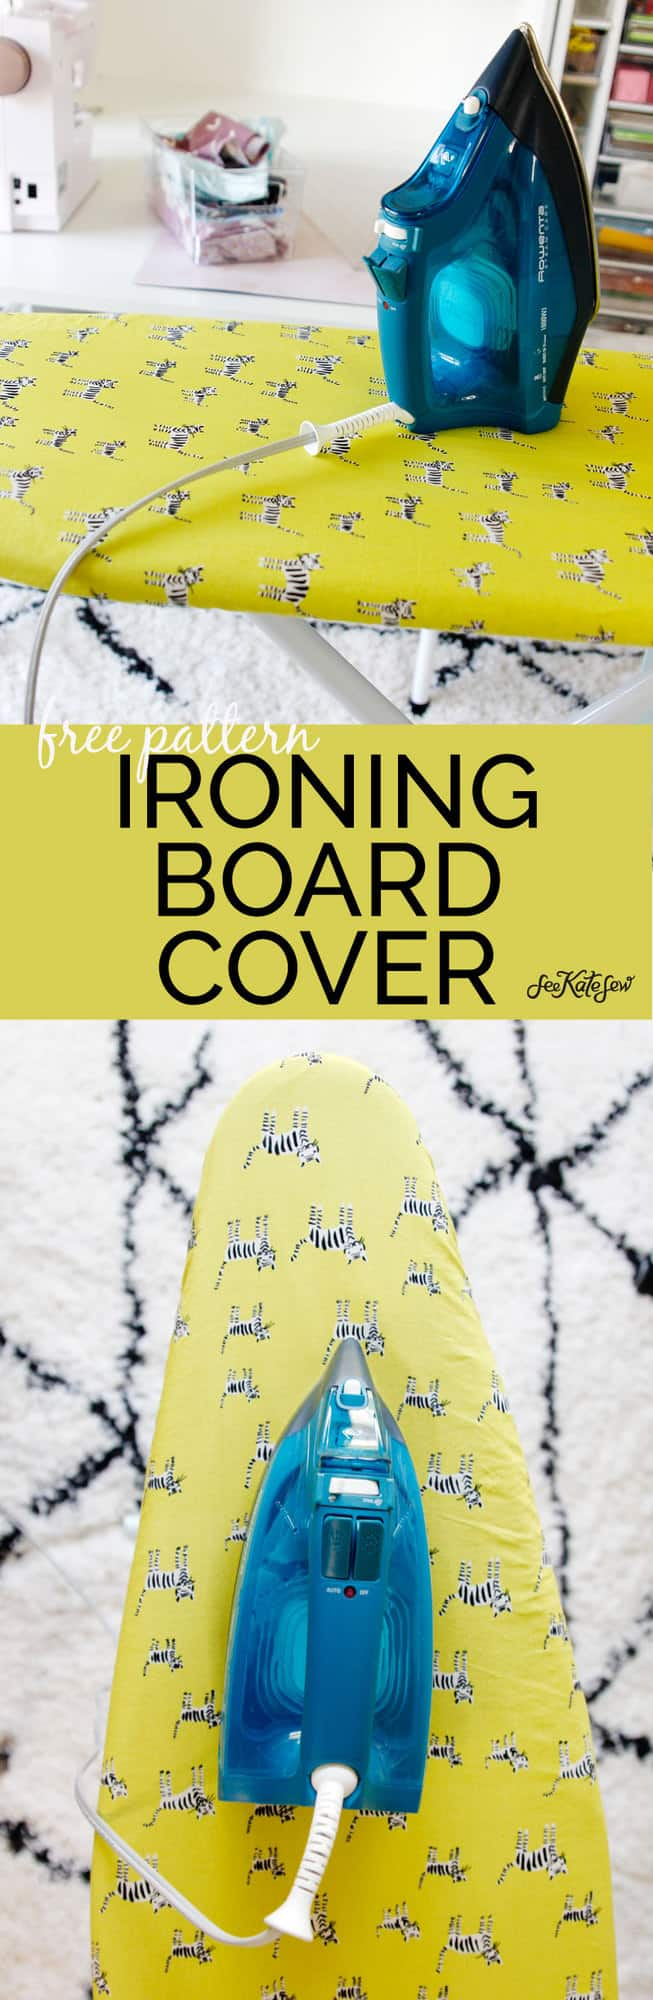 Sew a replacement ironing board cover